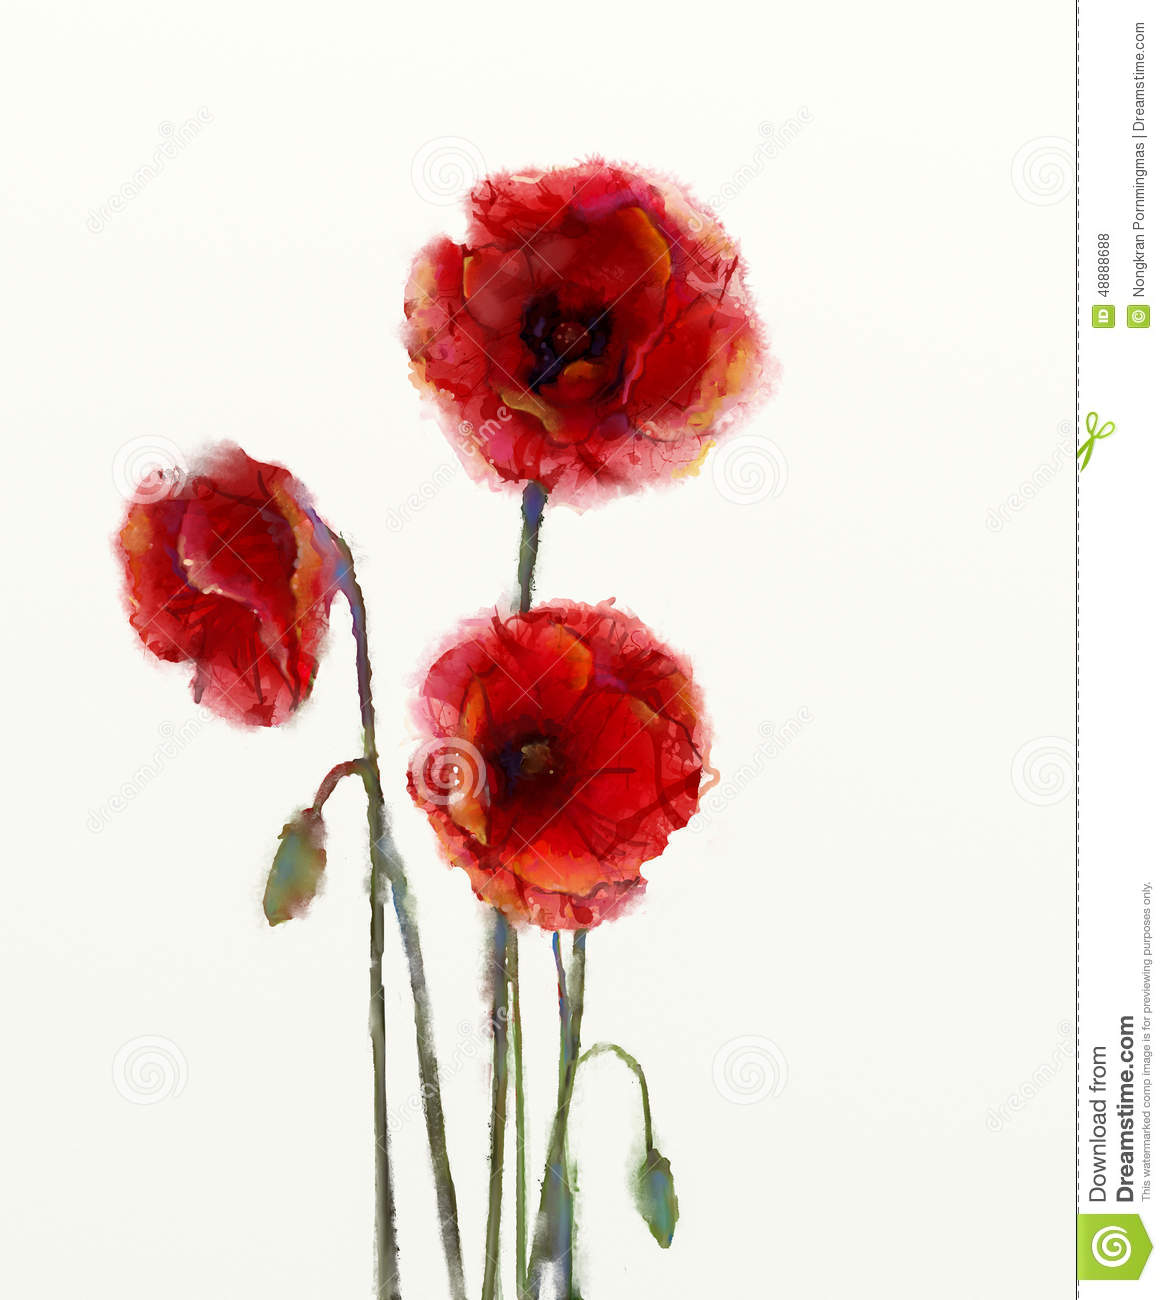 Red Poppy Flowers Watercolor Painting Illustration 48888688 Megapixl